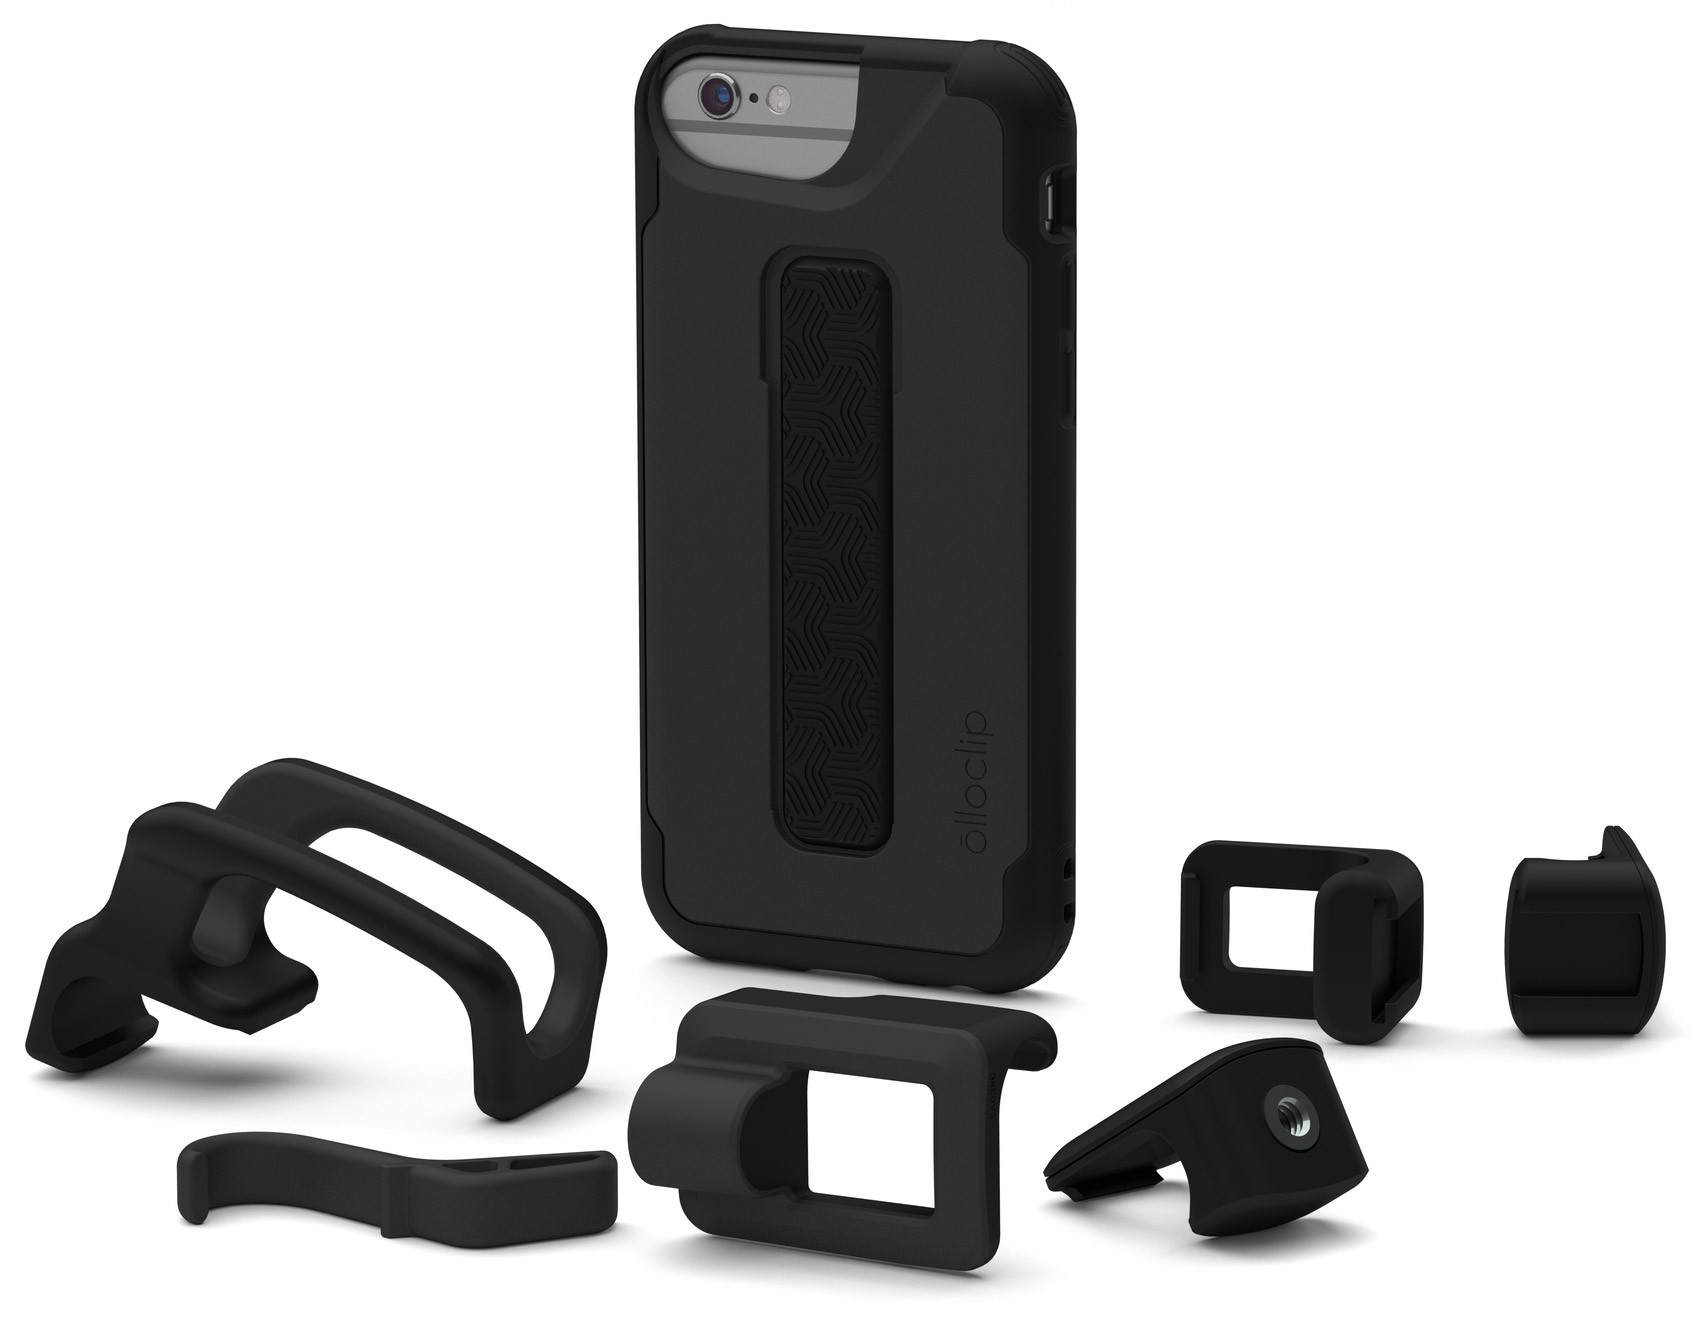 Olloclip Studio Ships - iPhone Case with Rail Mounted and Interchangeable Accessories